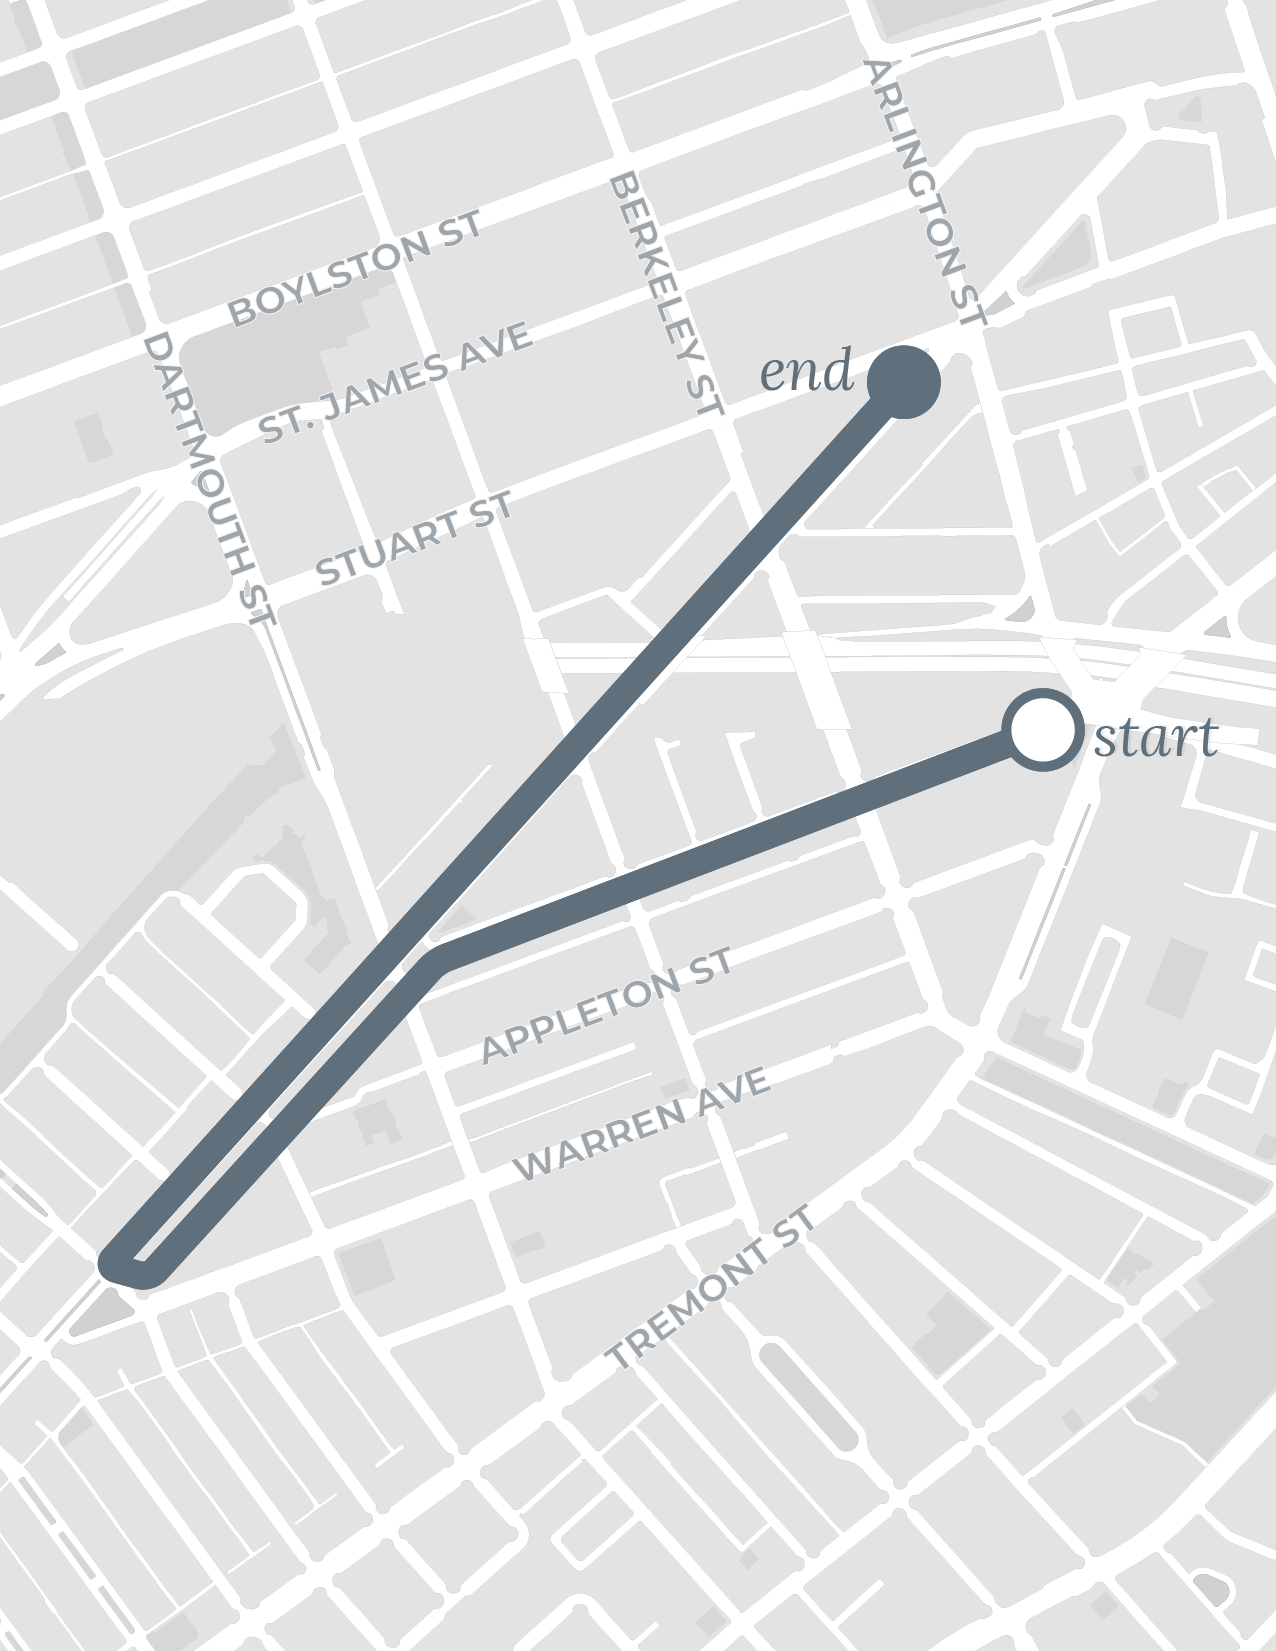 South End walk route map